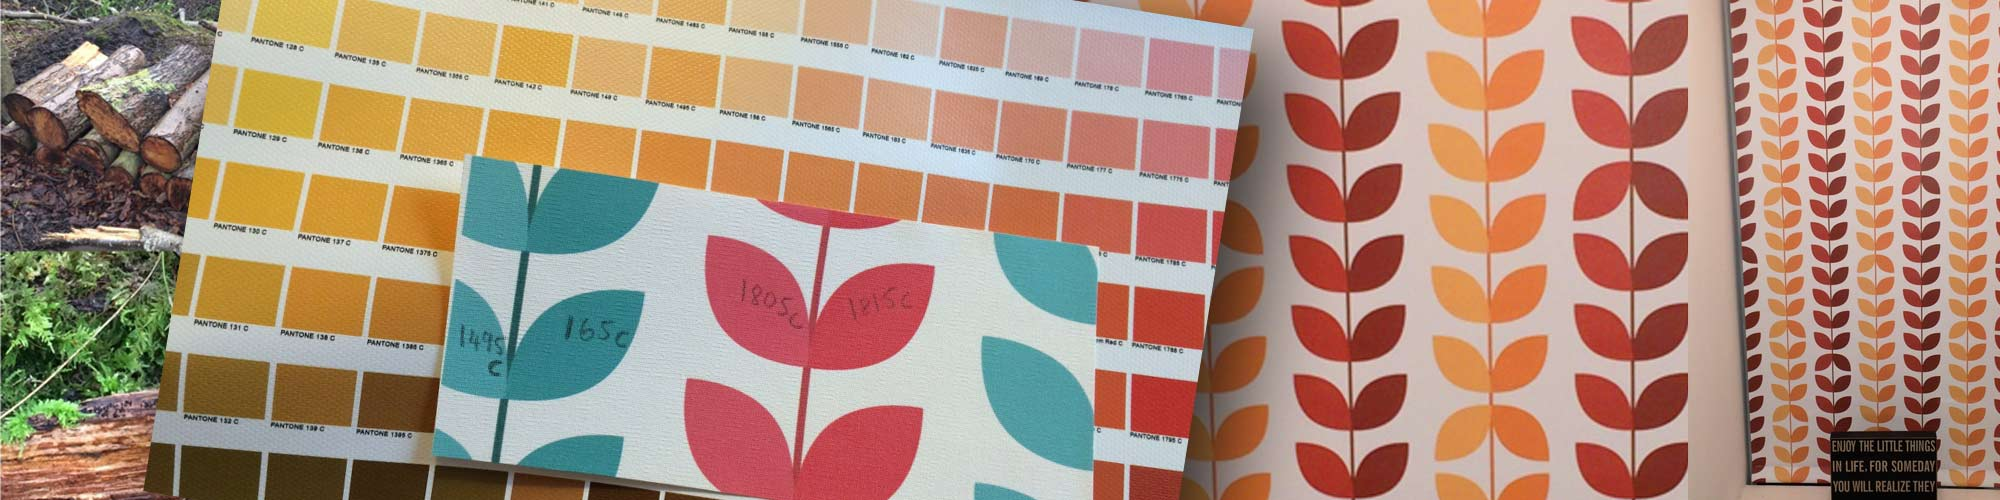 Recolouring patterns for bespoke customer designs by Chorlton Blinds